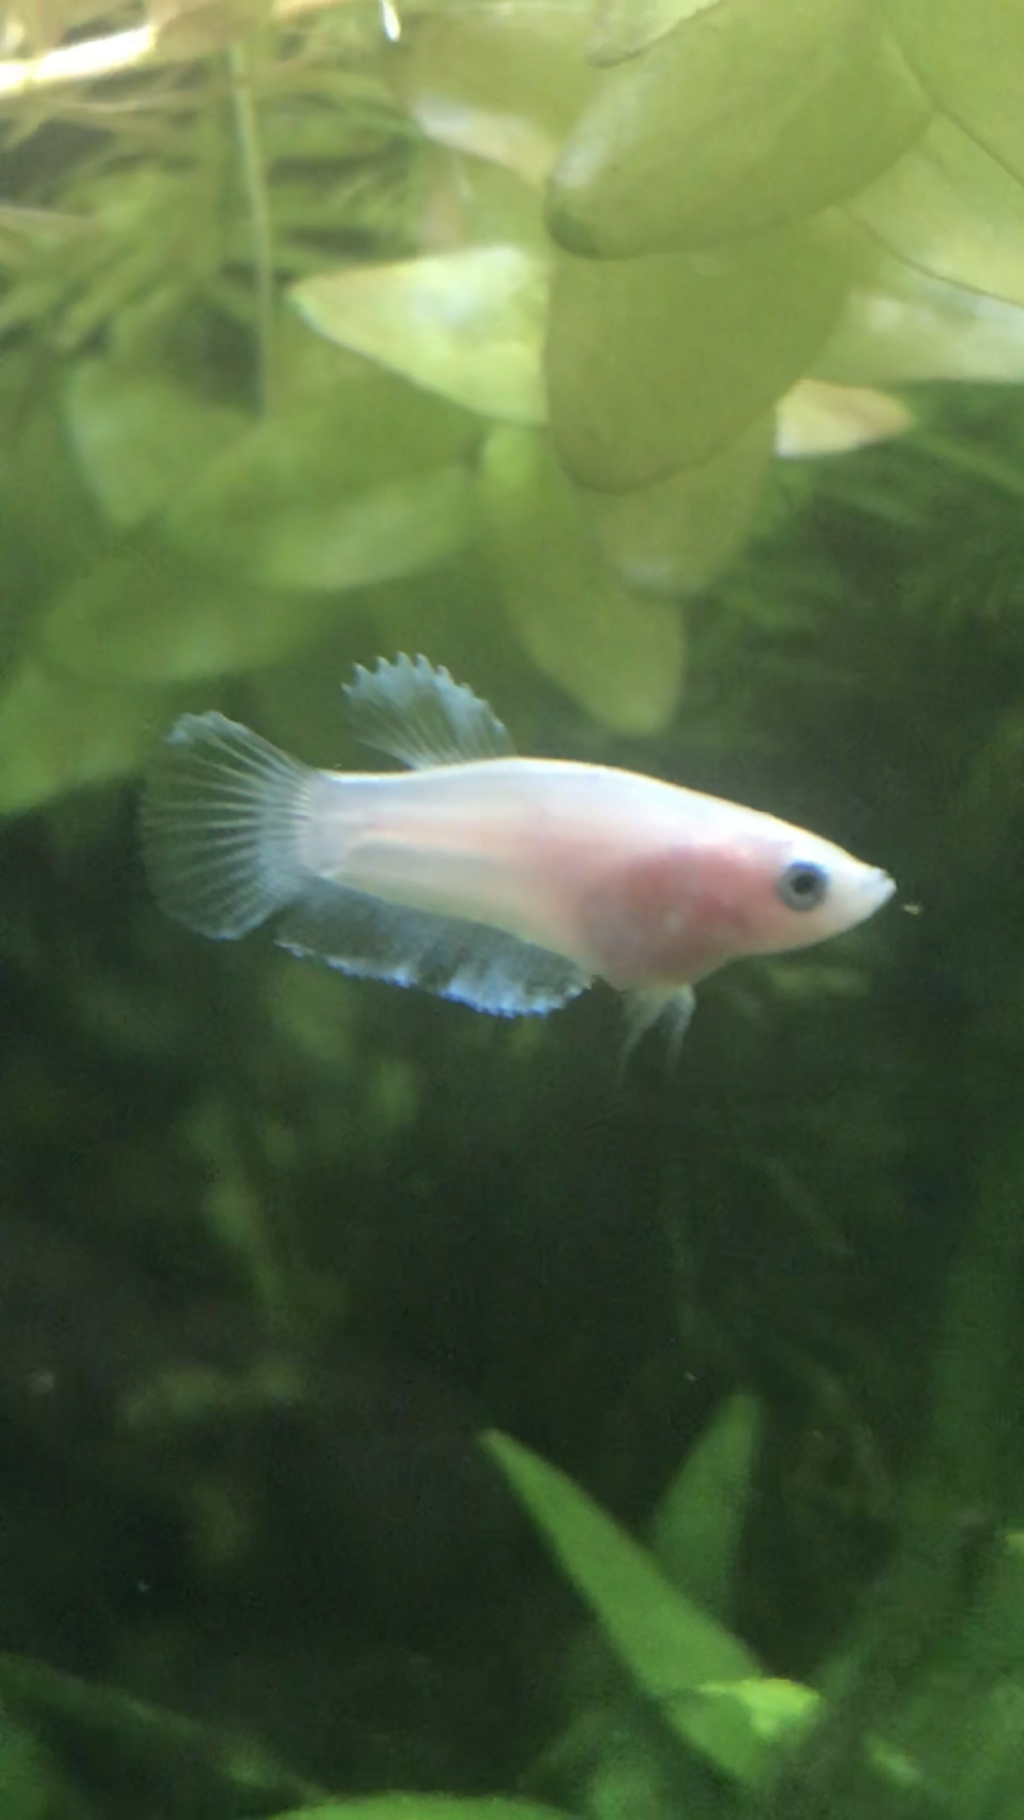 Reproduction du Betta splendens Eb560d10